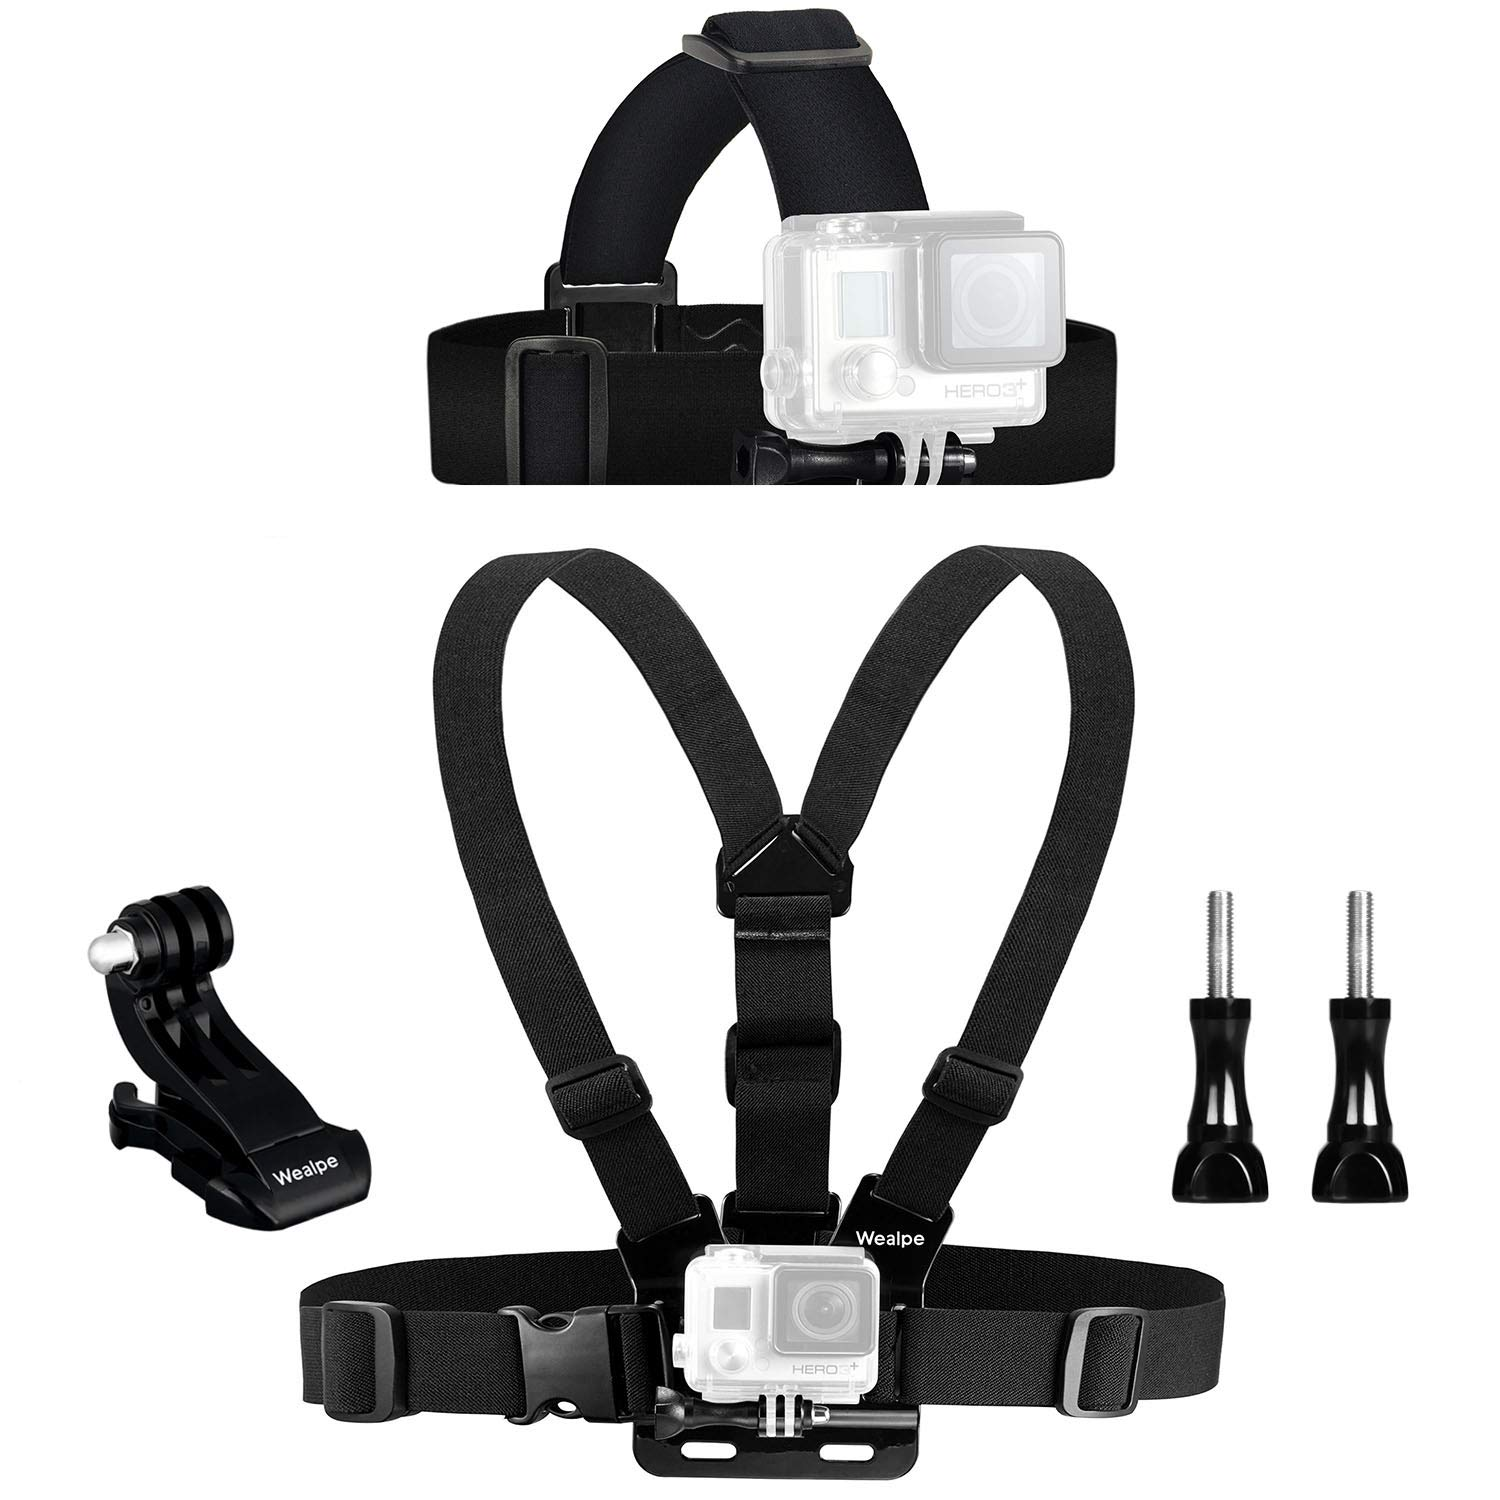 Wealpe Replacement Chest Mount Harness Head Strap Mount Compatible with GoPro Fusion, 6, 5, 4, Session, 3+, 3, 2, 1, Xiaomi Yi Cameras